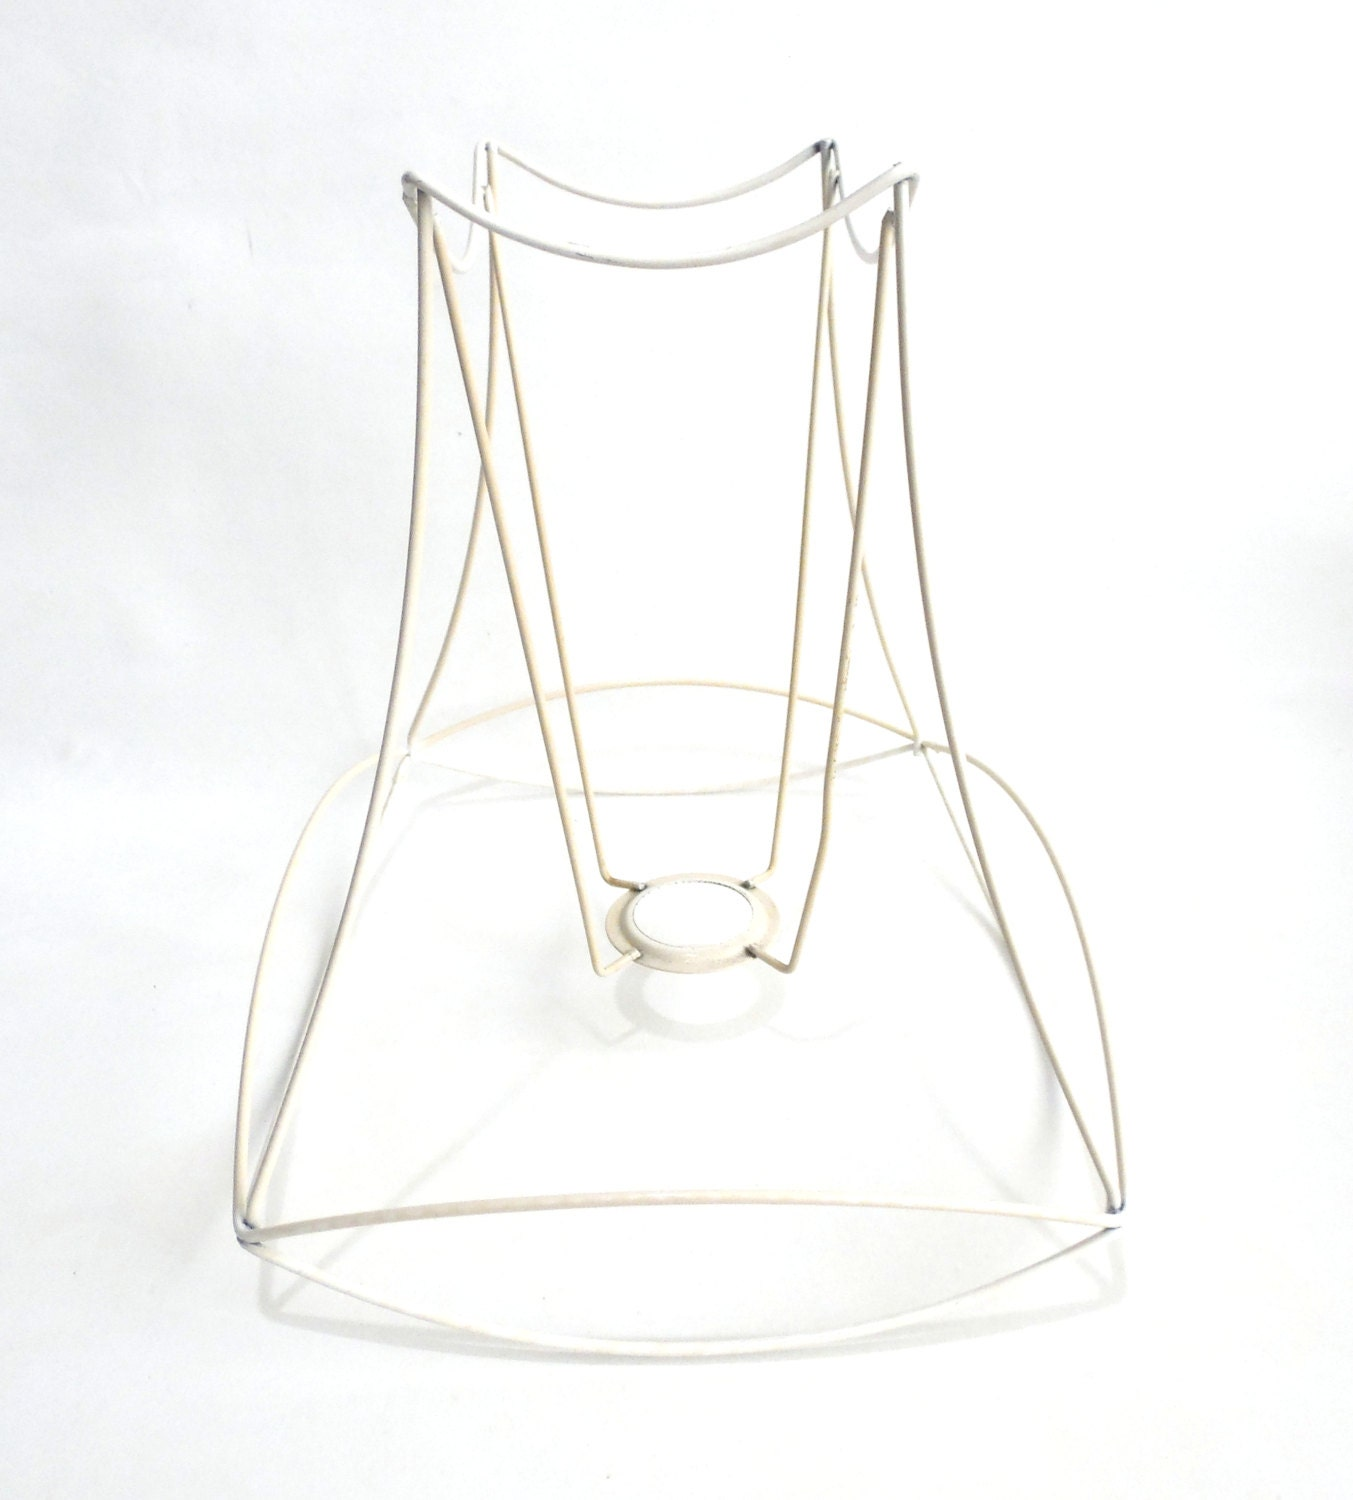 Lampshade frame wire frame authentic vintage lampshade wire frame lampshade frame diy 642gafk19 sold by theantiqueapplique keyboard keysfo Images